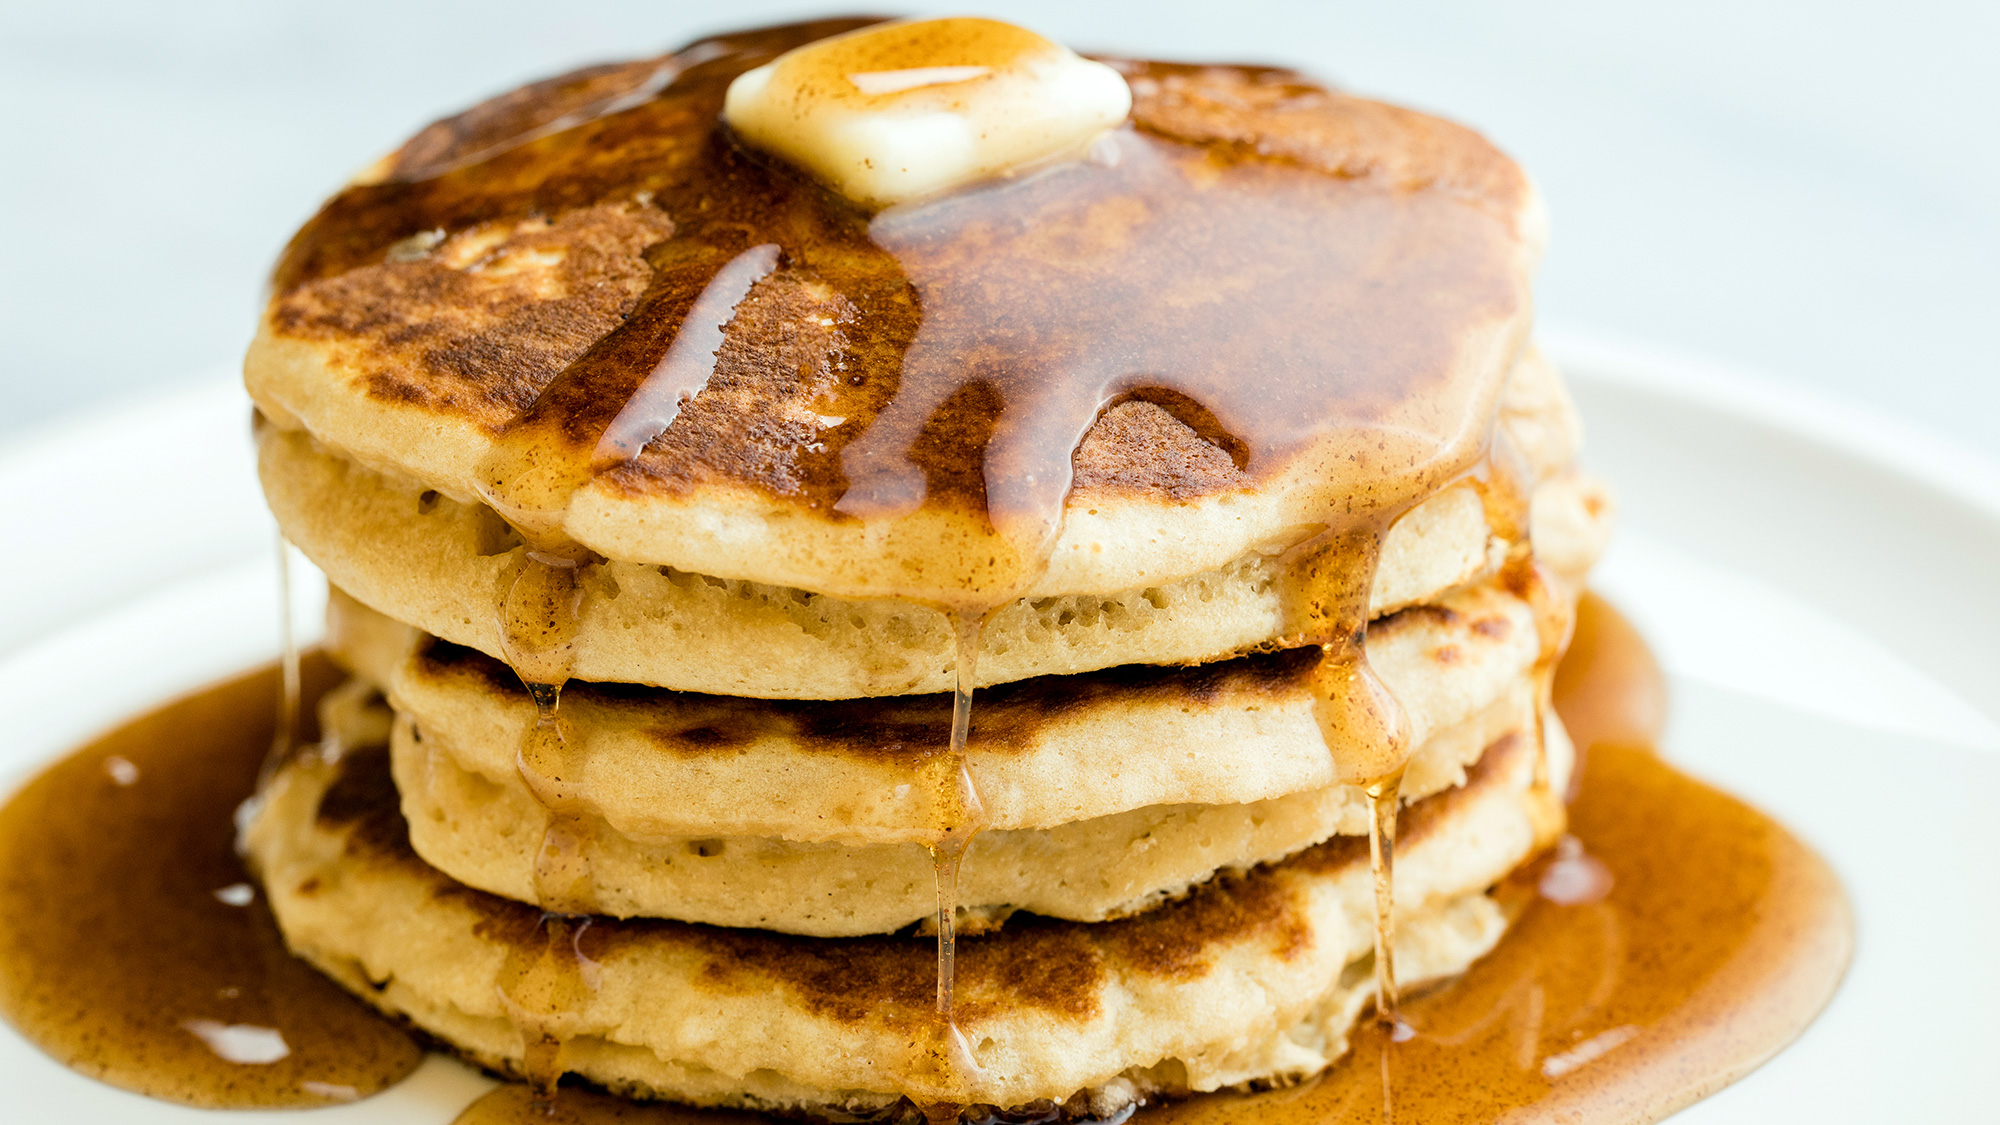 homemade_fluffy_pancakes_2000x1125.jpg